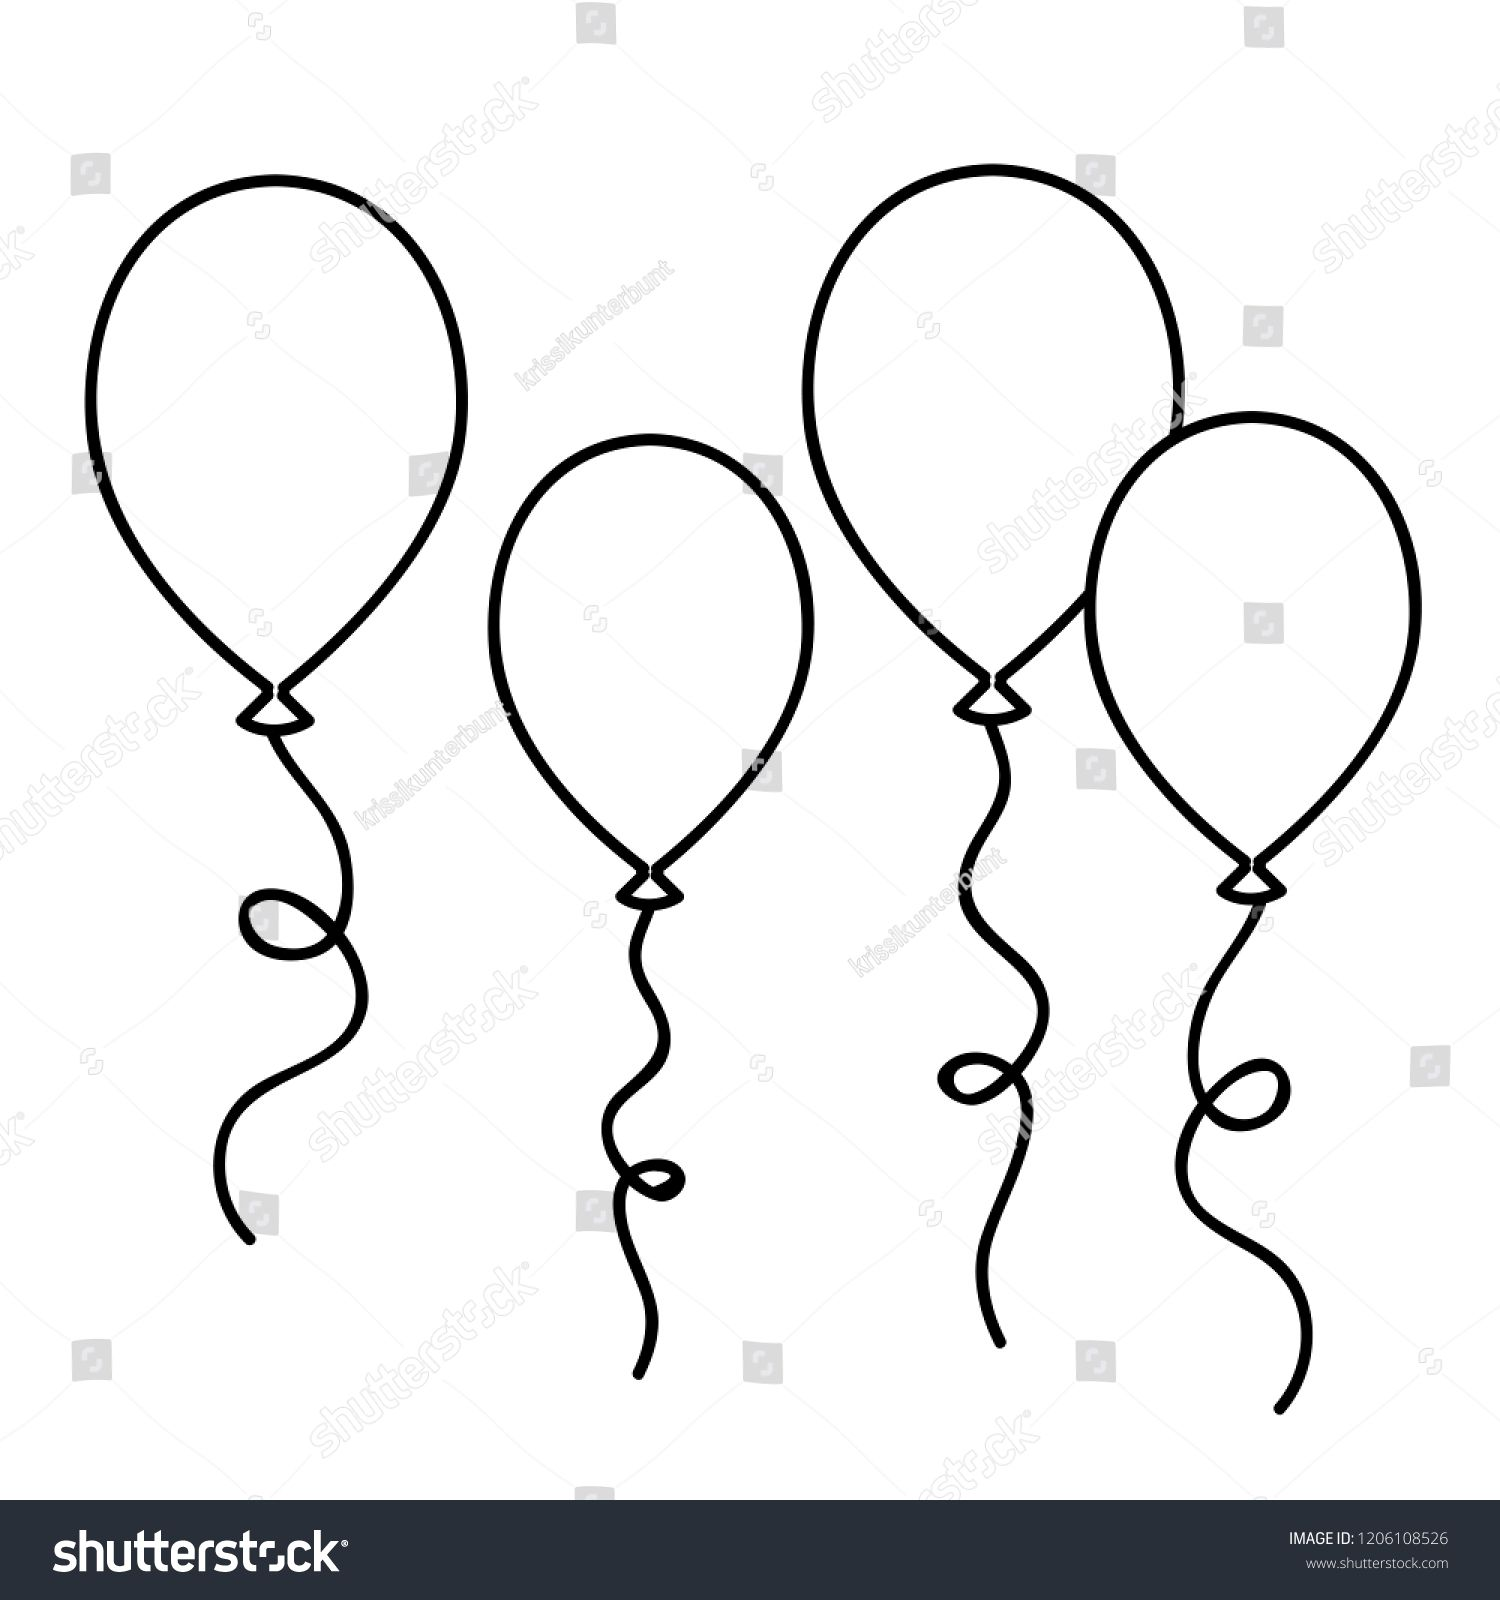 Balloons Simple Drawing Outline For Coloring Book Vector